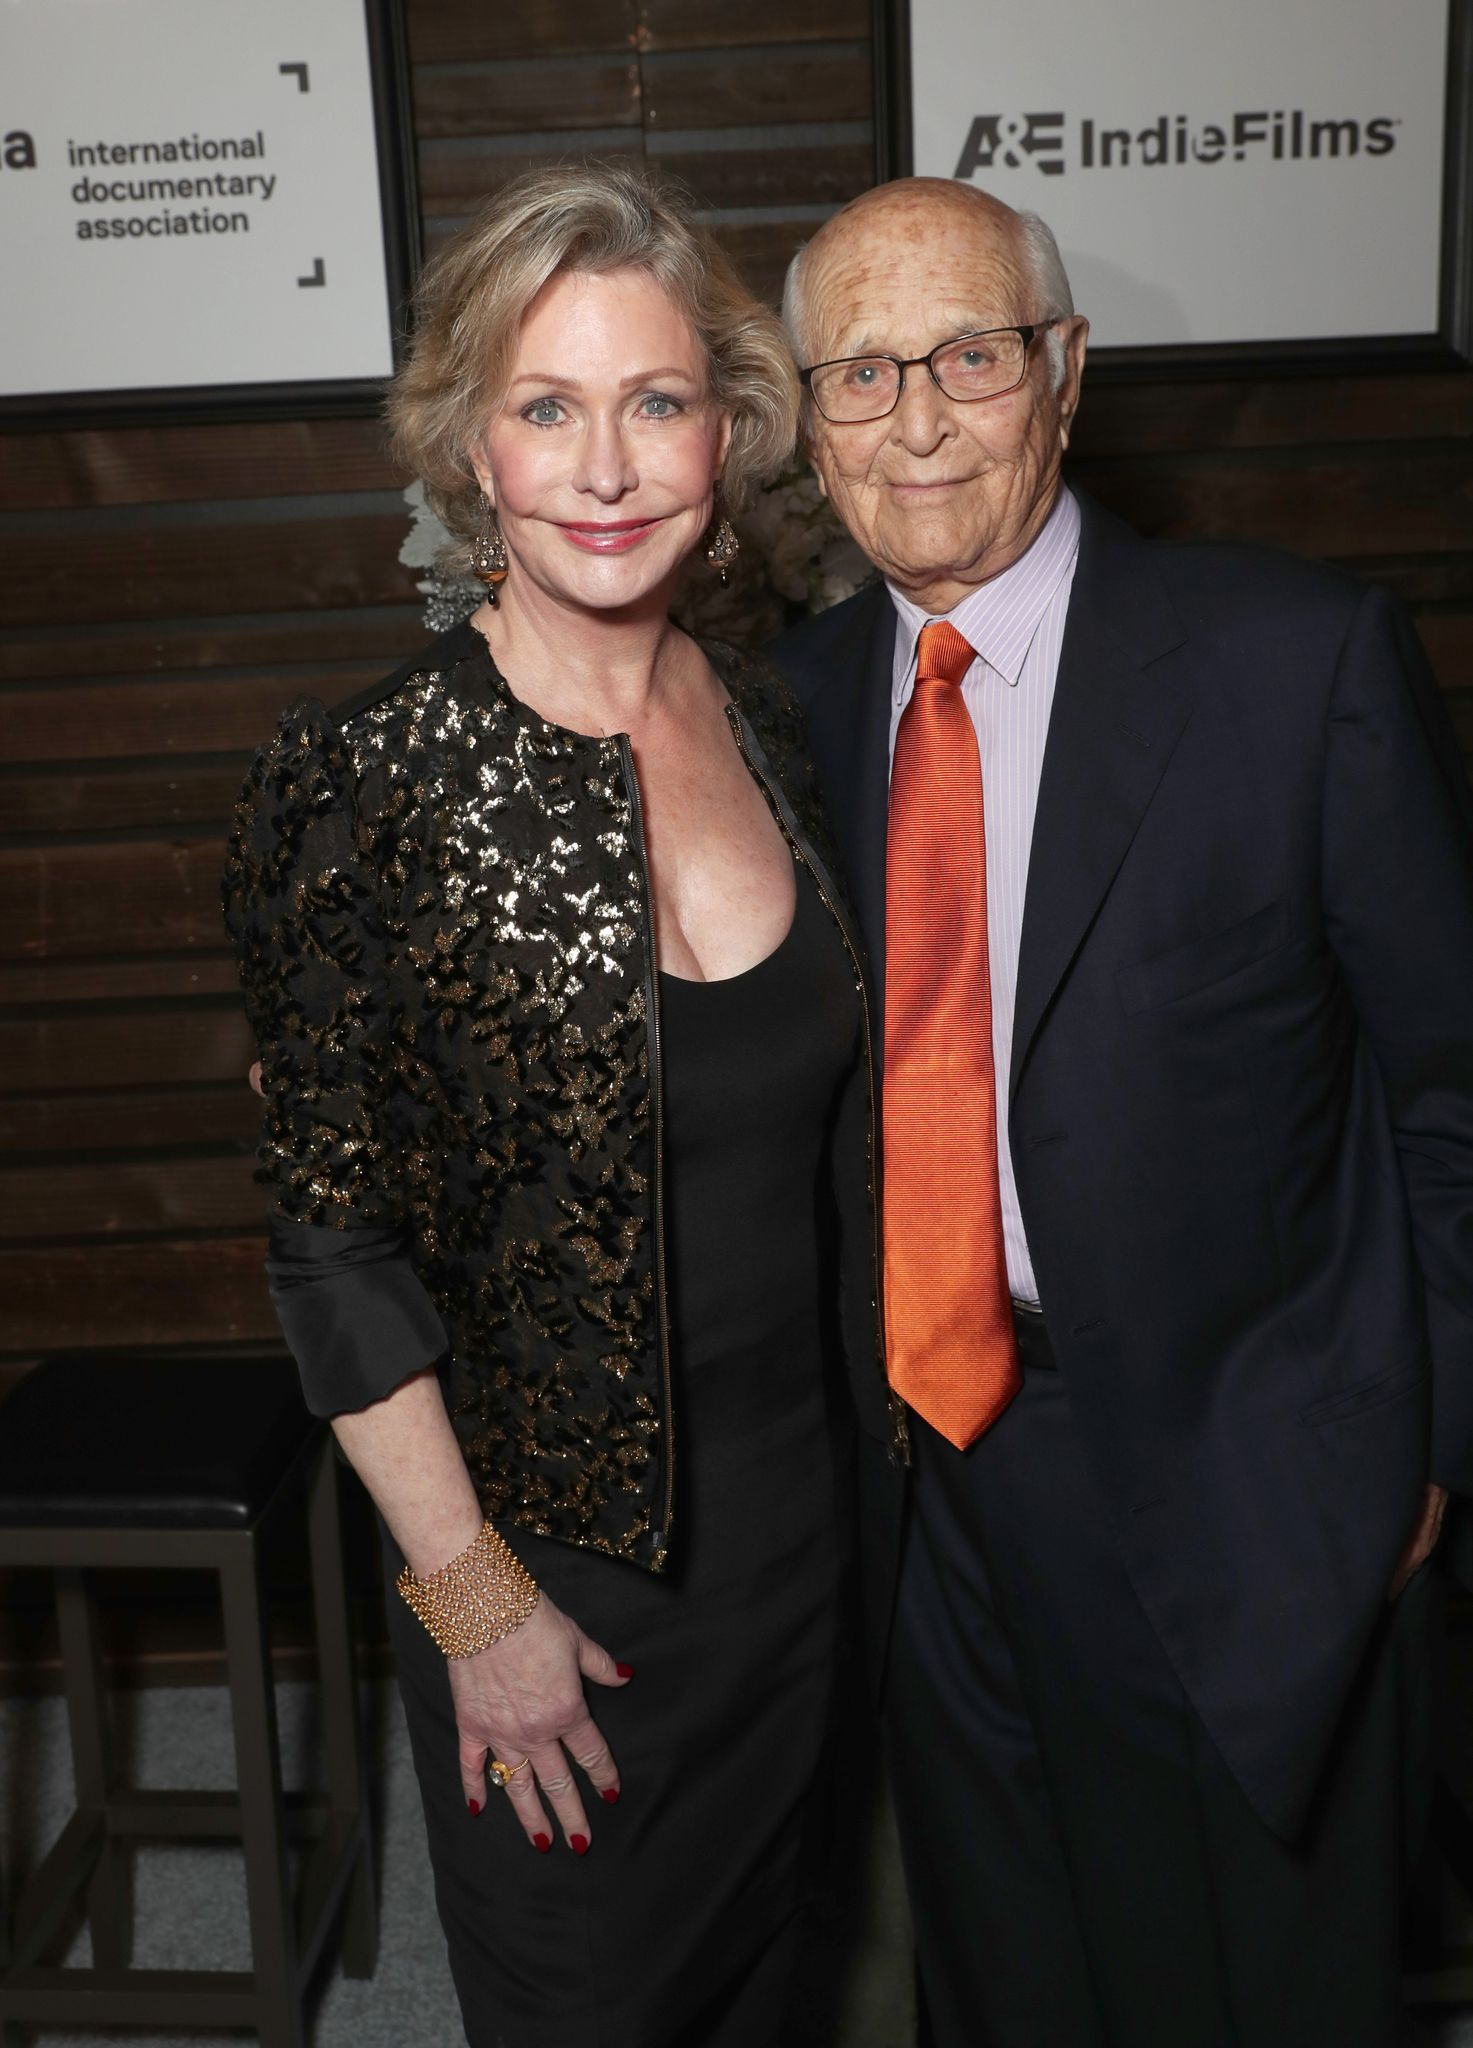 Lyn and Norman Lear at the 32nd Annual IDA Documentary Awards in 2016 in Hollywood, California | Source: Getty Images